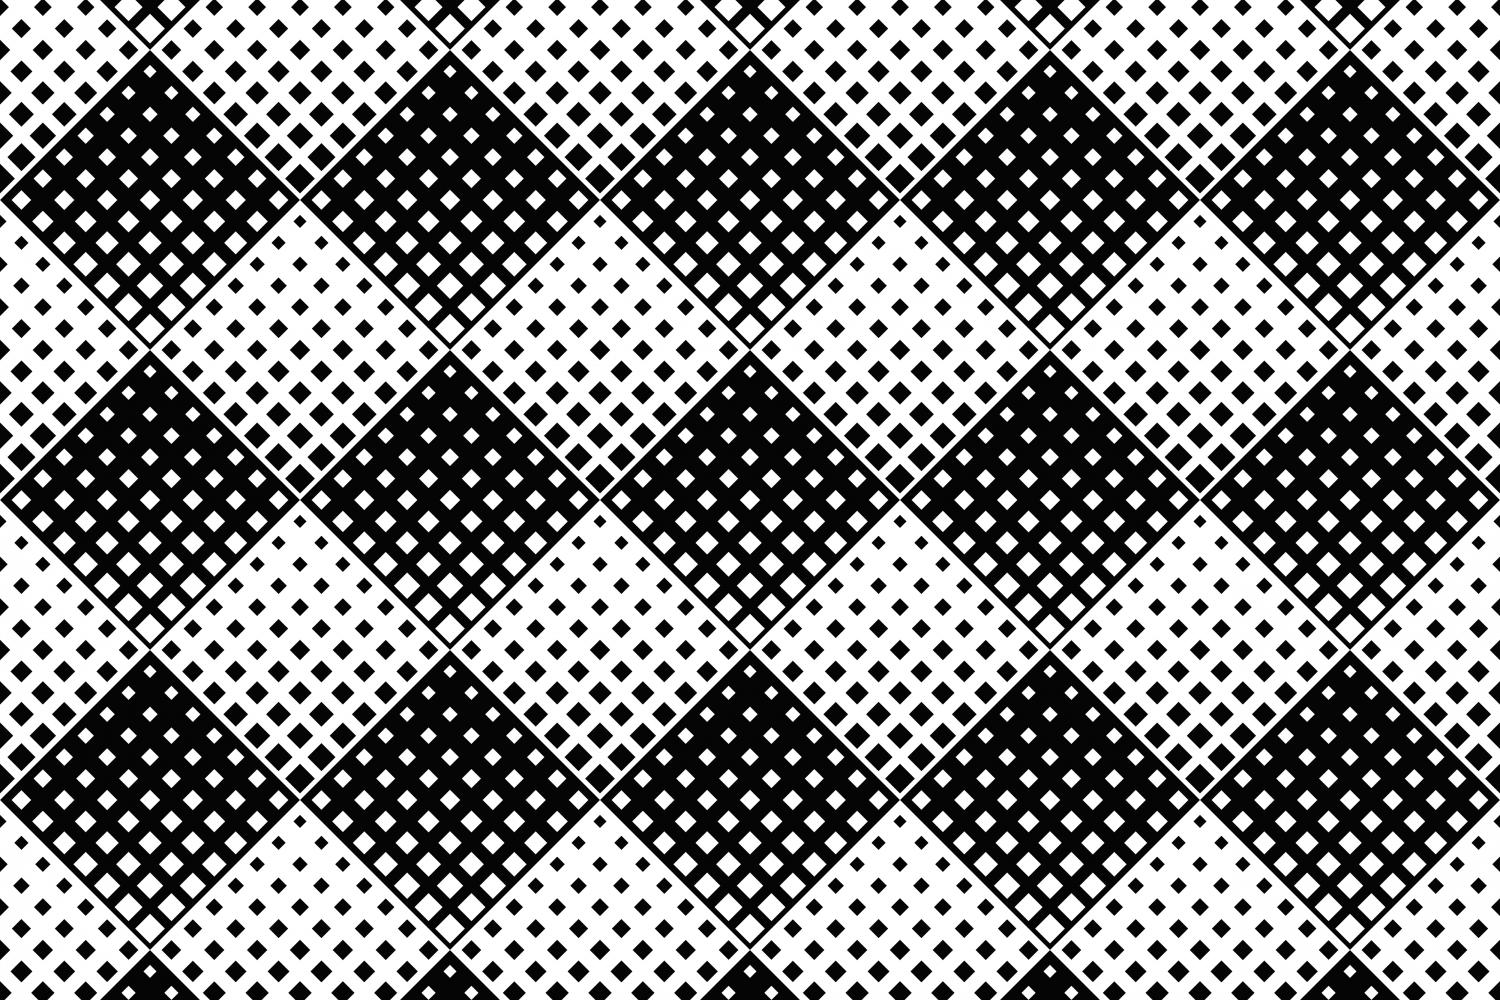 24 Seamless Square Patterns example image 22